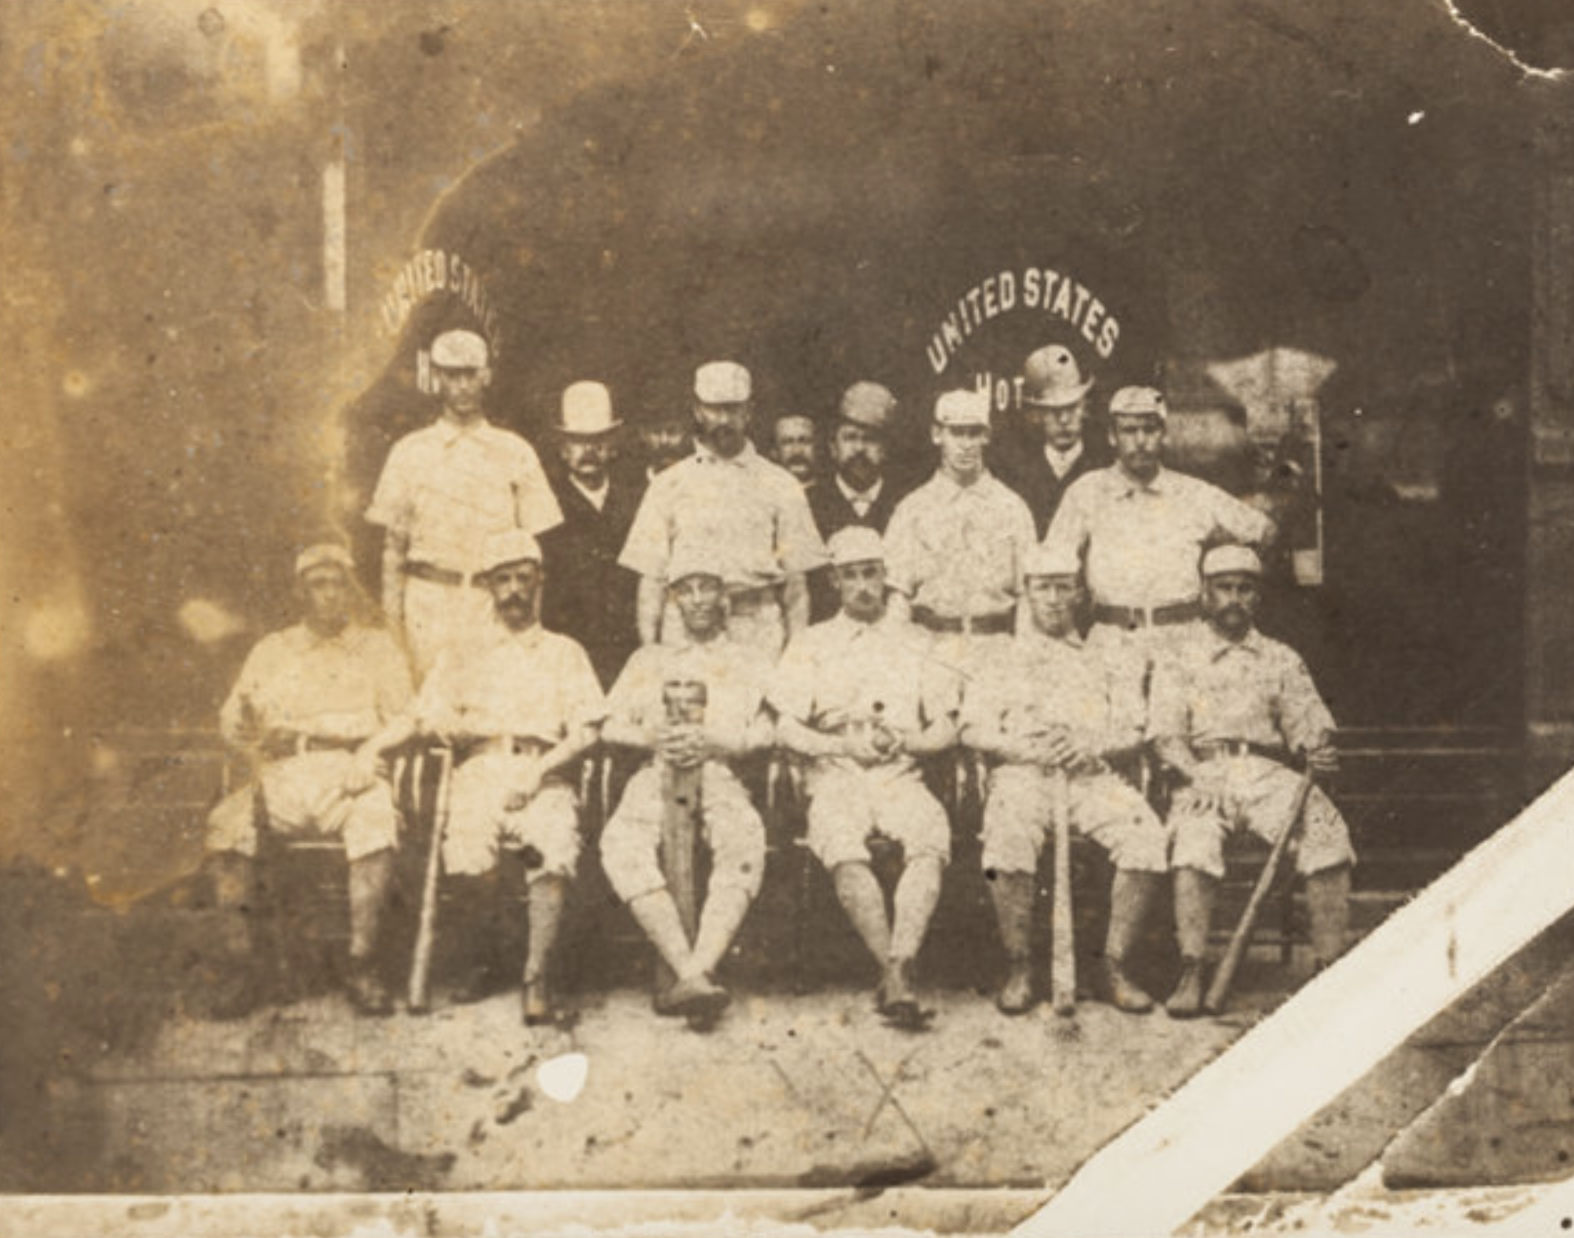 The Hartford Base Ball Club pose outside the United States Hotel, Hartford, Connecticut, 1876.